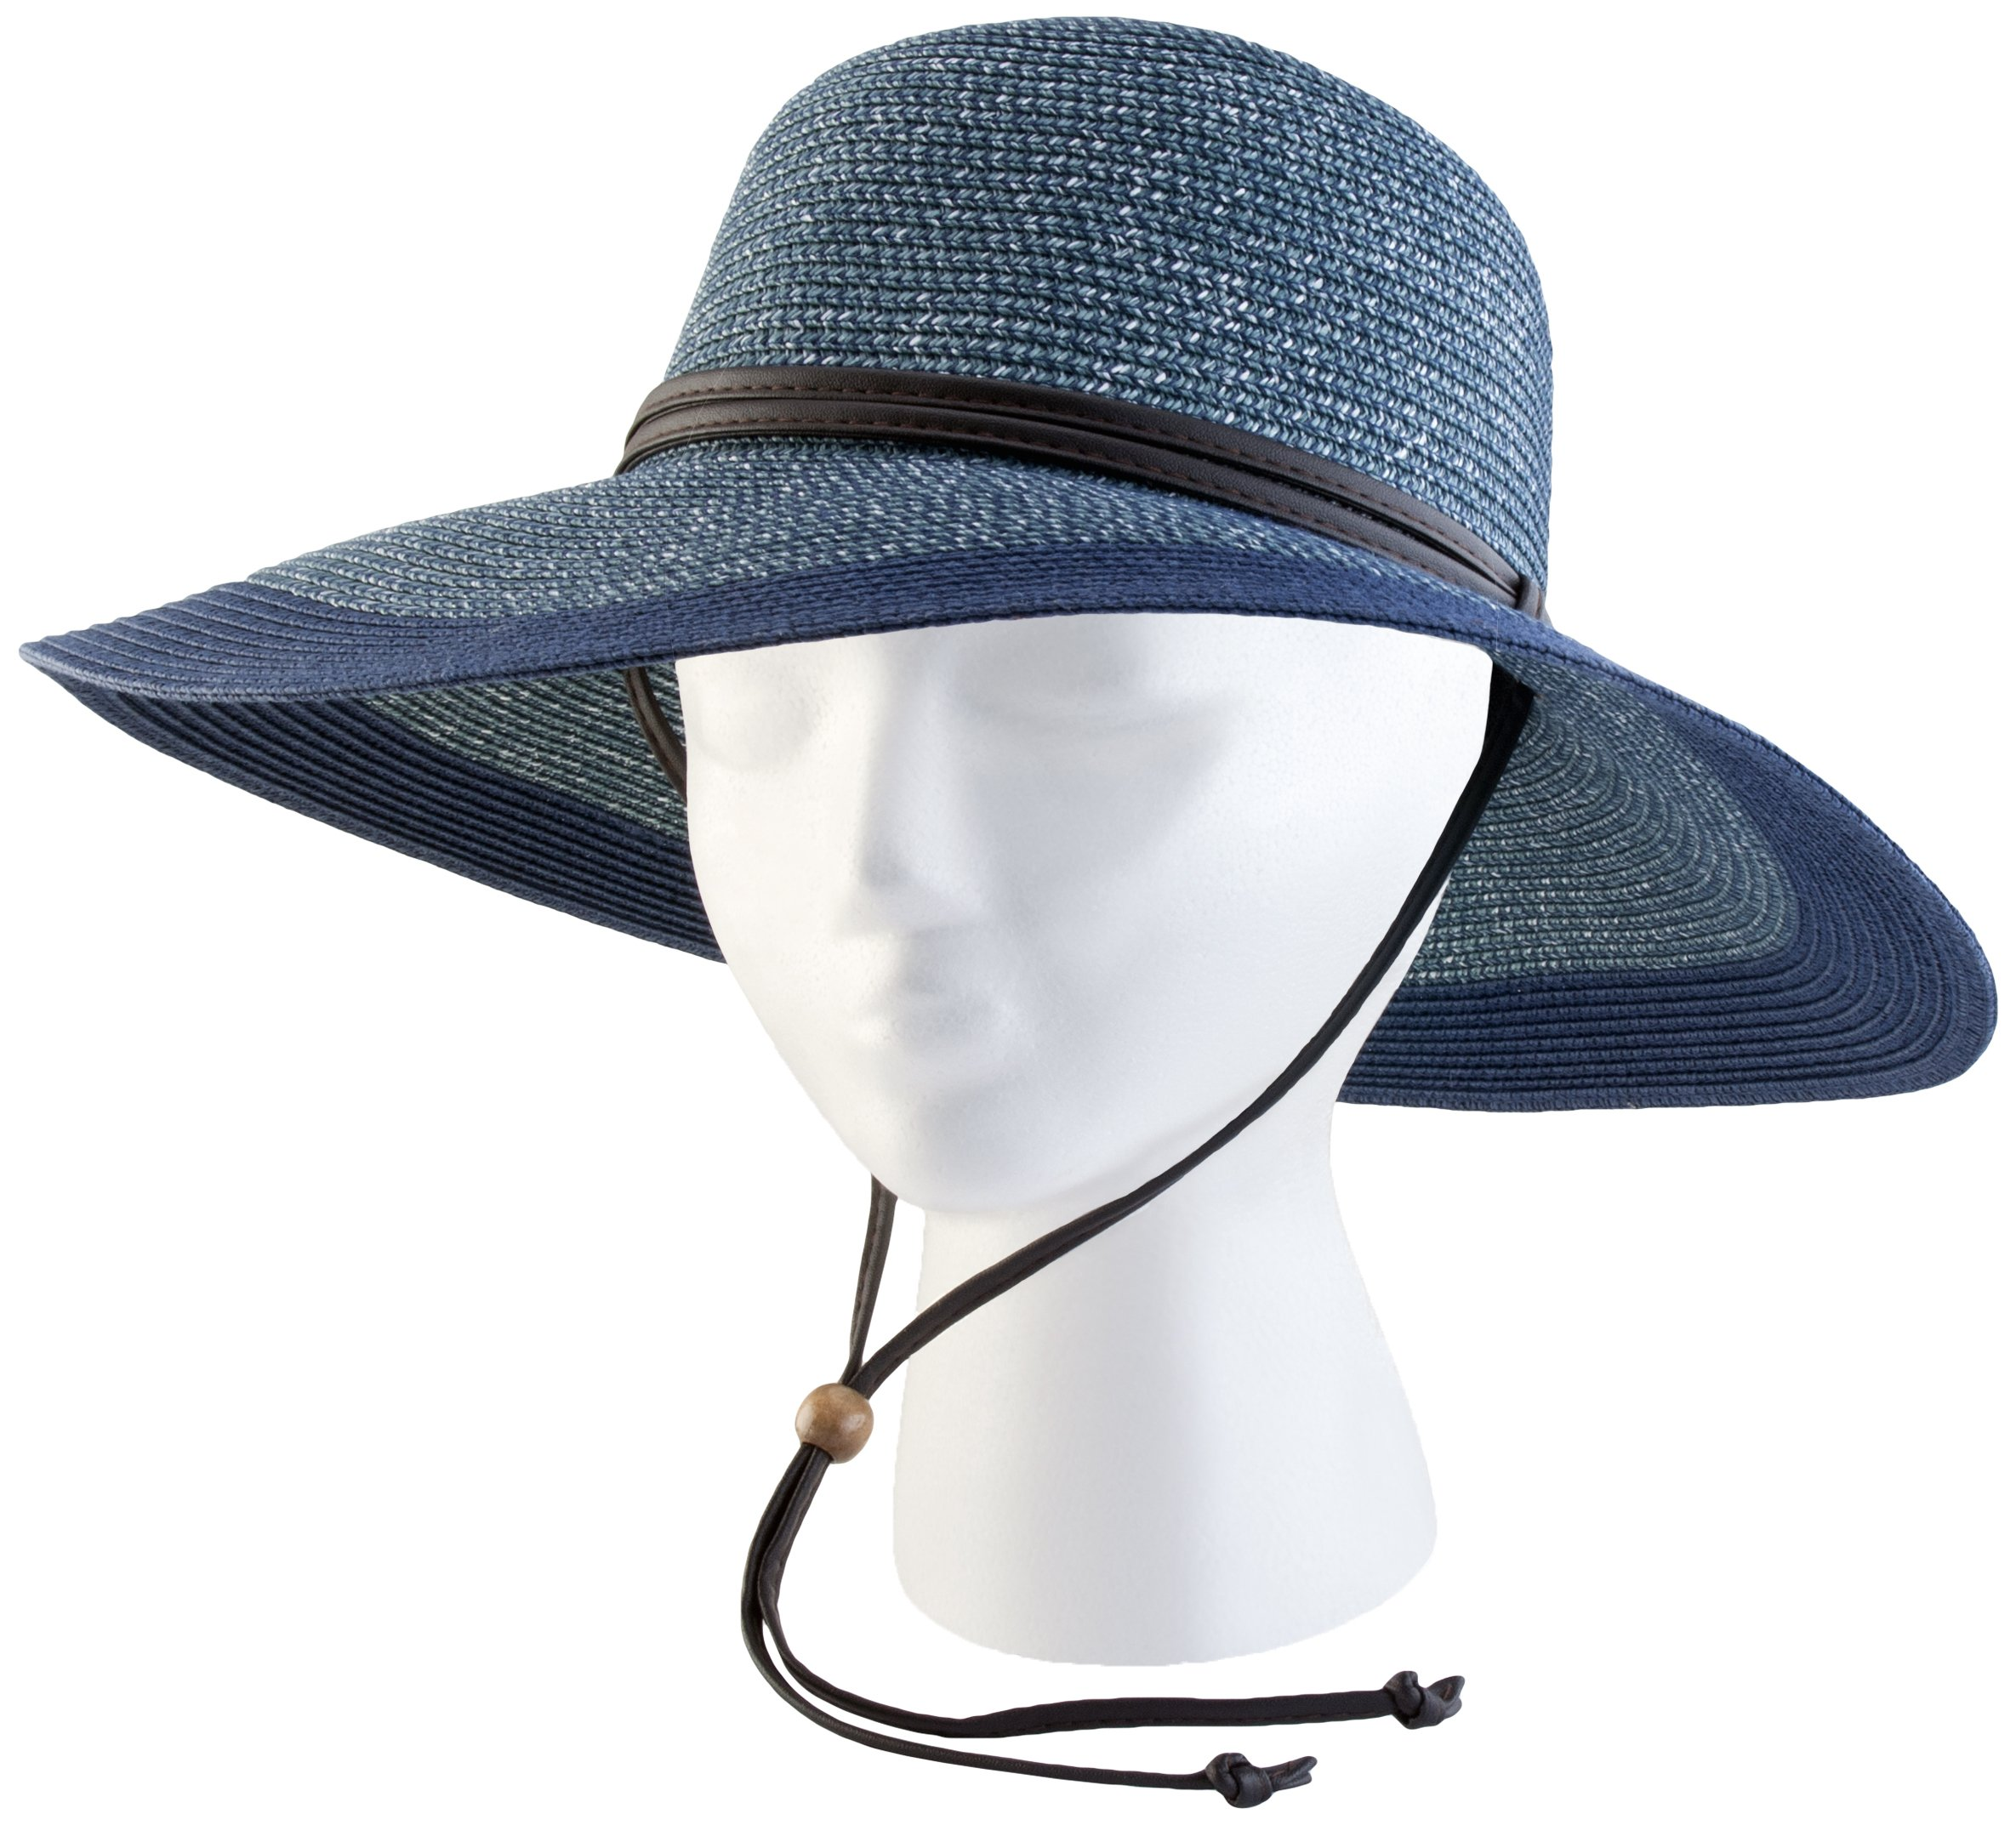 Sloggers Braided Wide Hat, Grey Blue, UPF 50+  Maximum Sun Protection, Style 4404BL